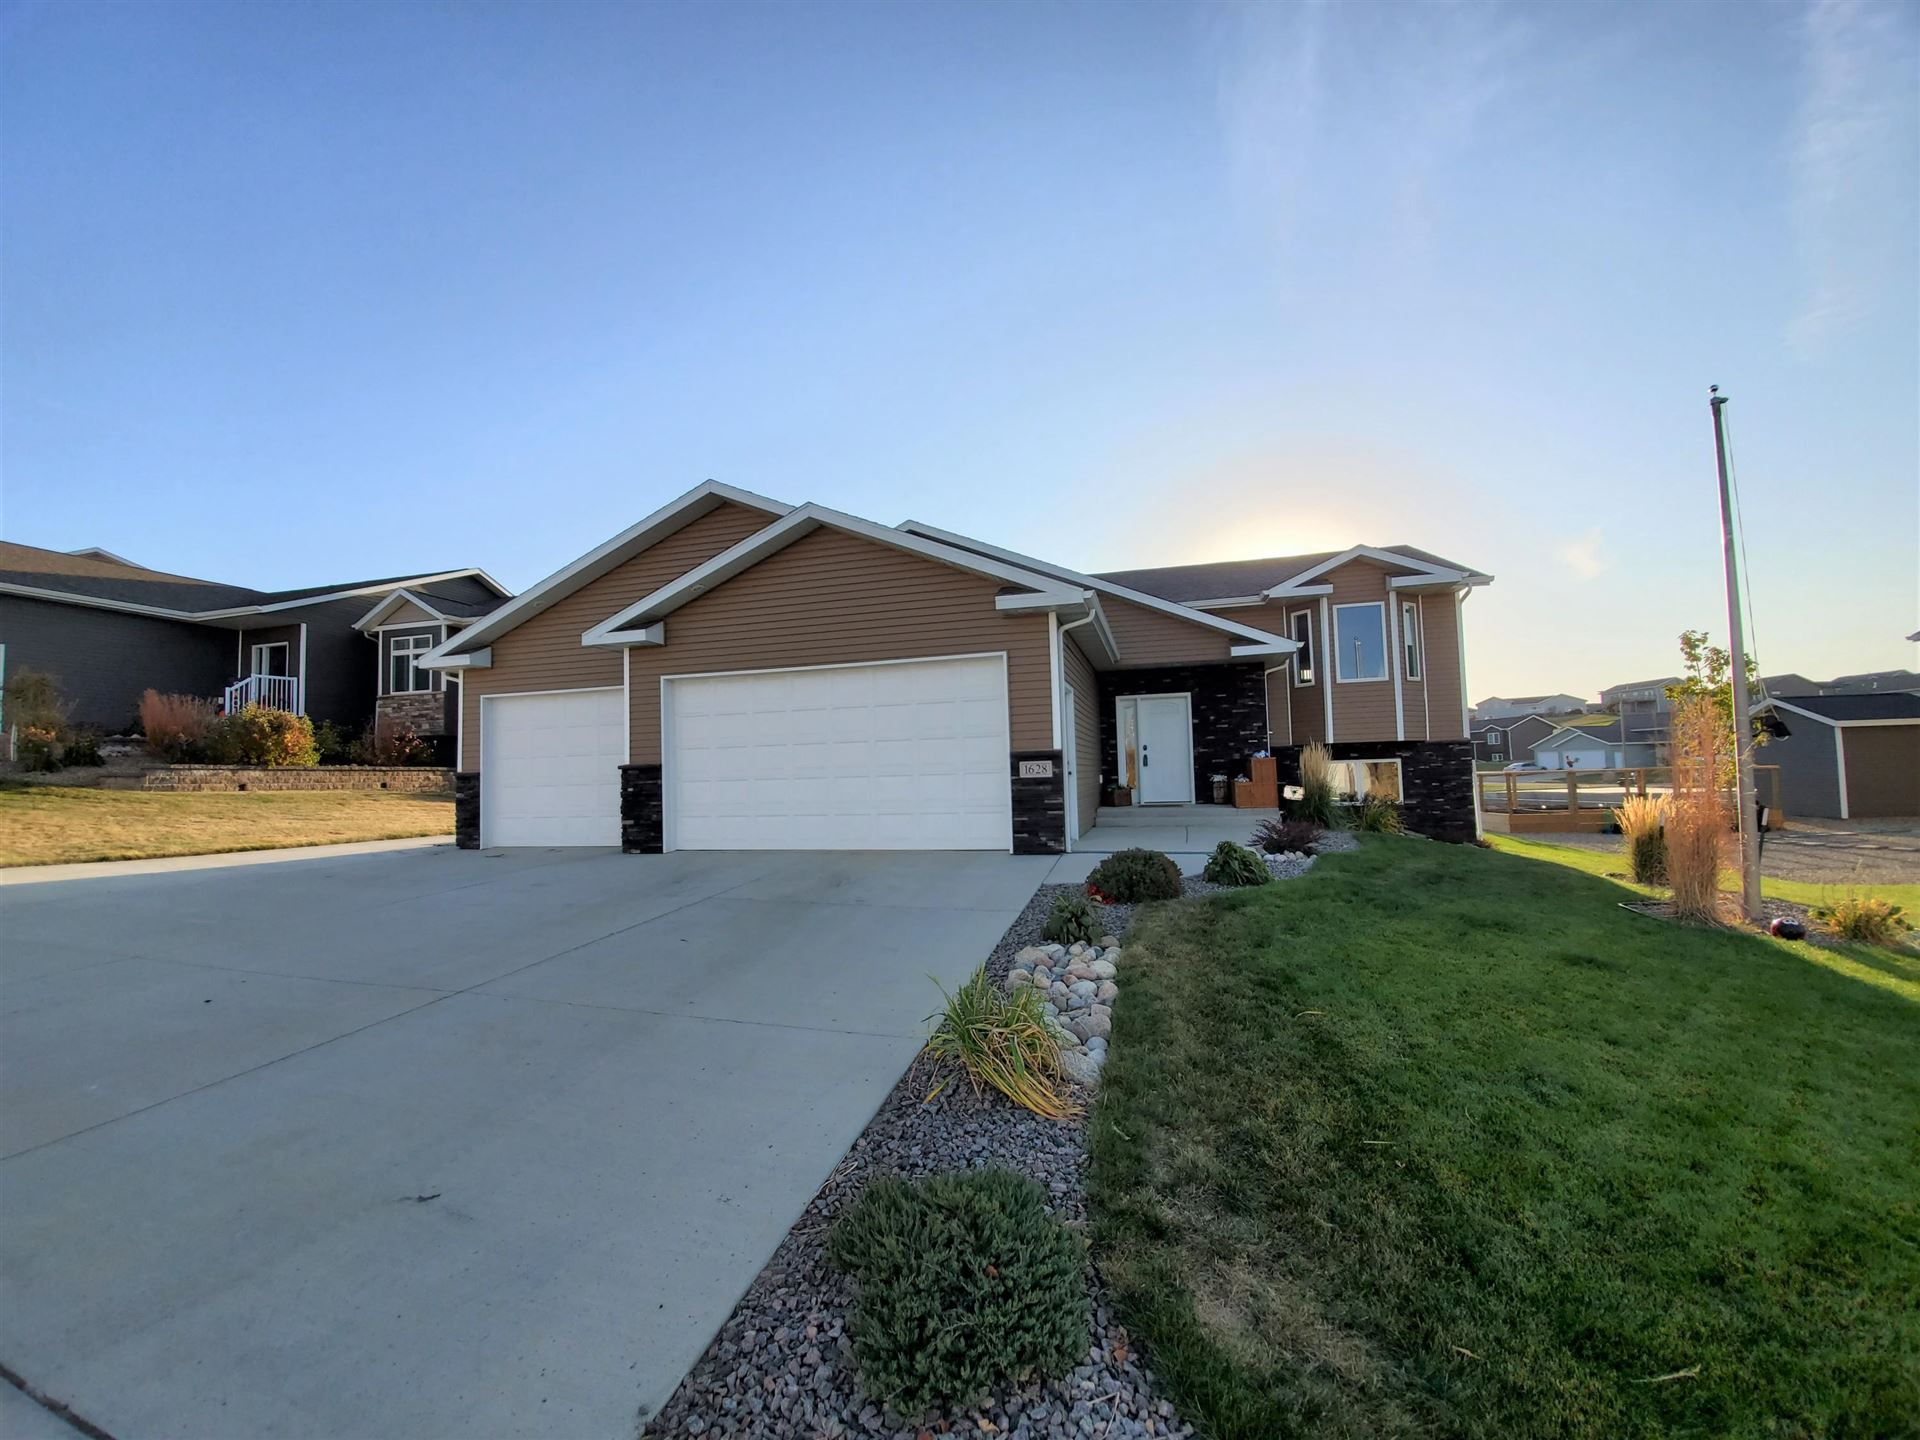 1628 Plains Bend SE, Mandan, ND 58554 - #: 408730